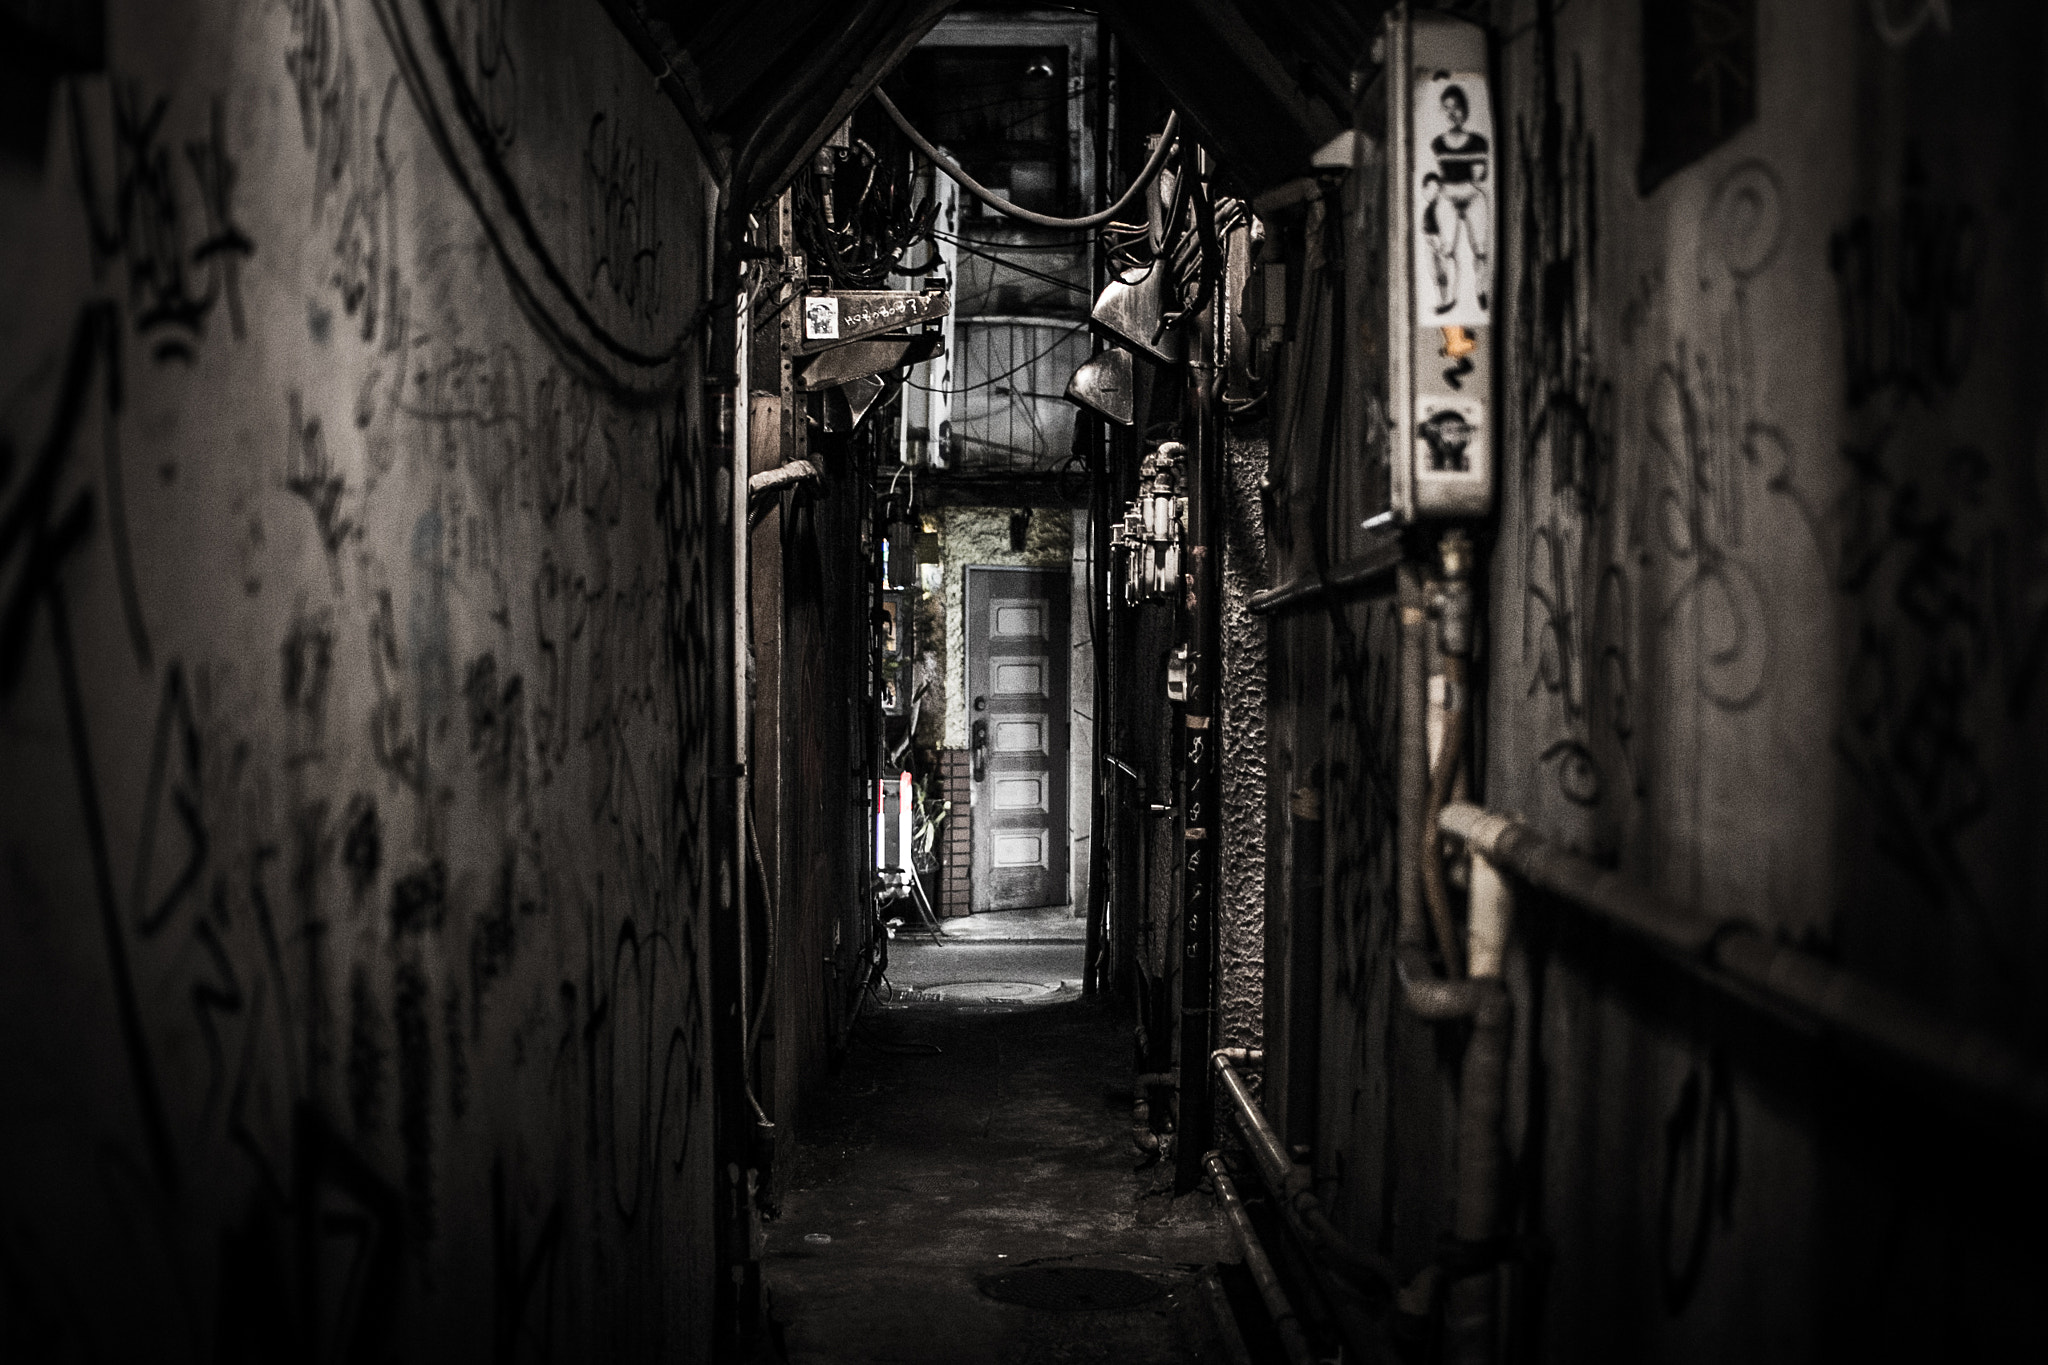 Photograph Alley of the Night by seto_shunsuke on 500px